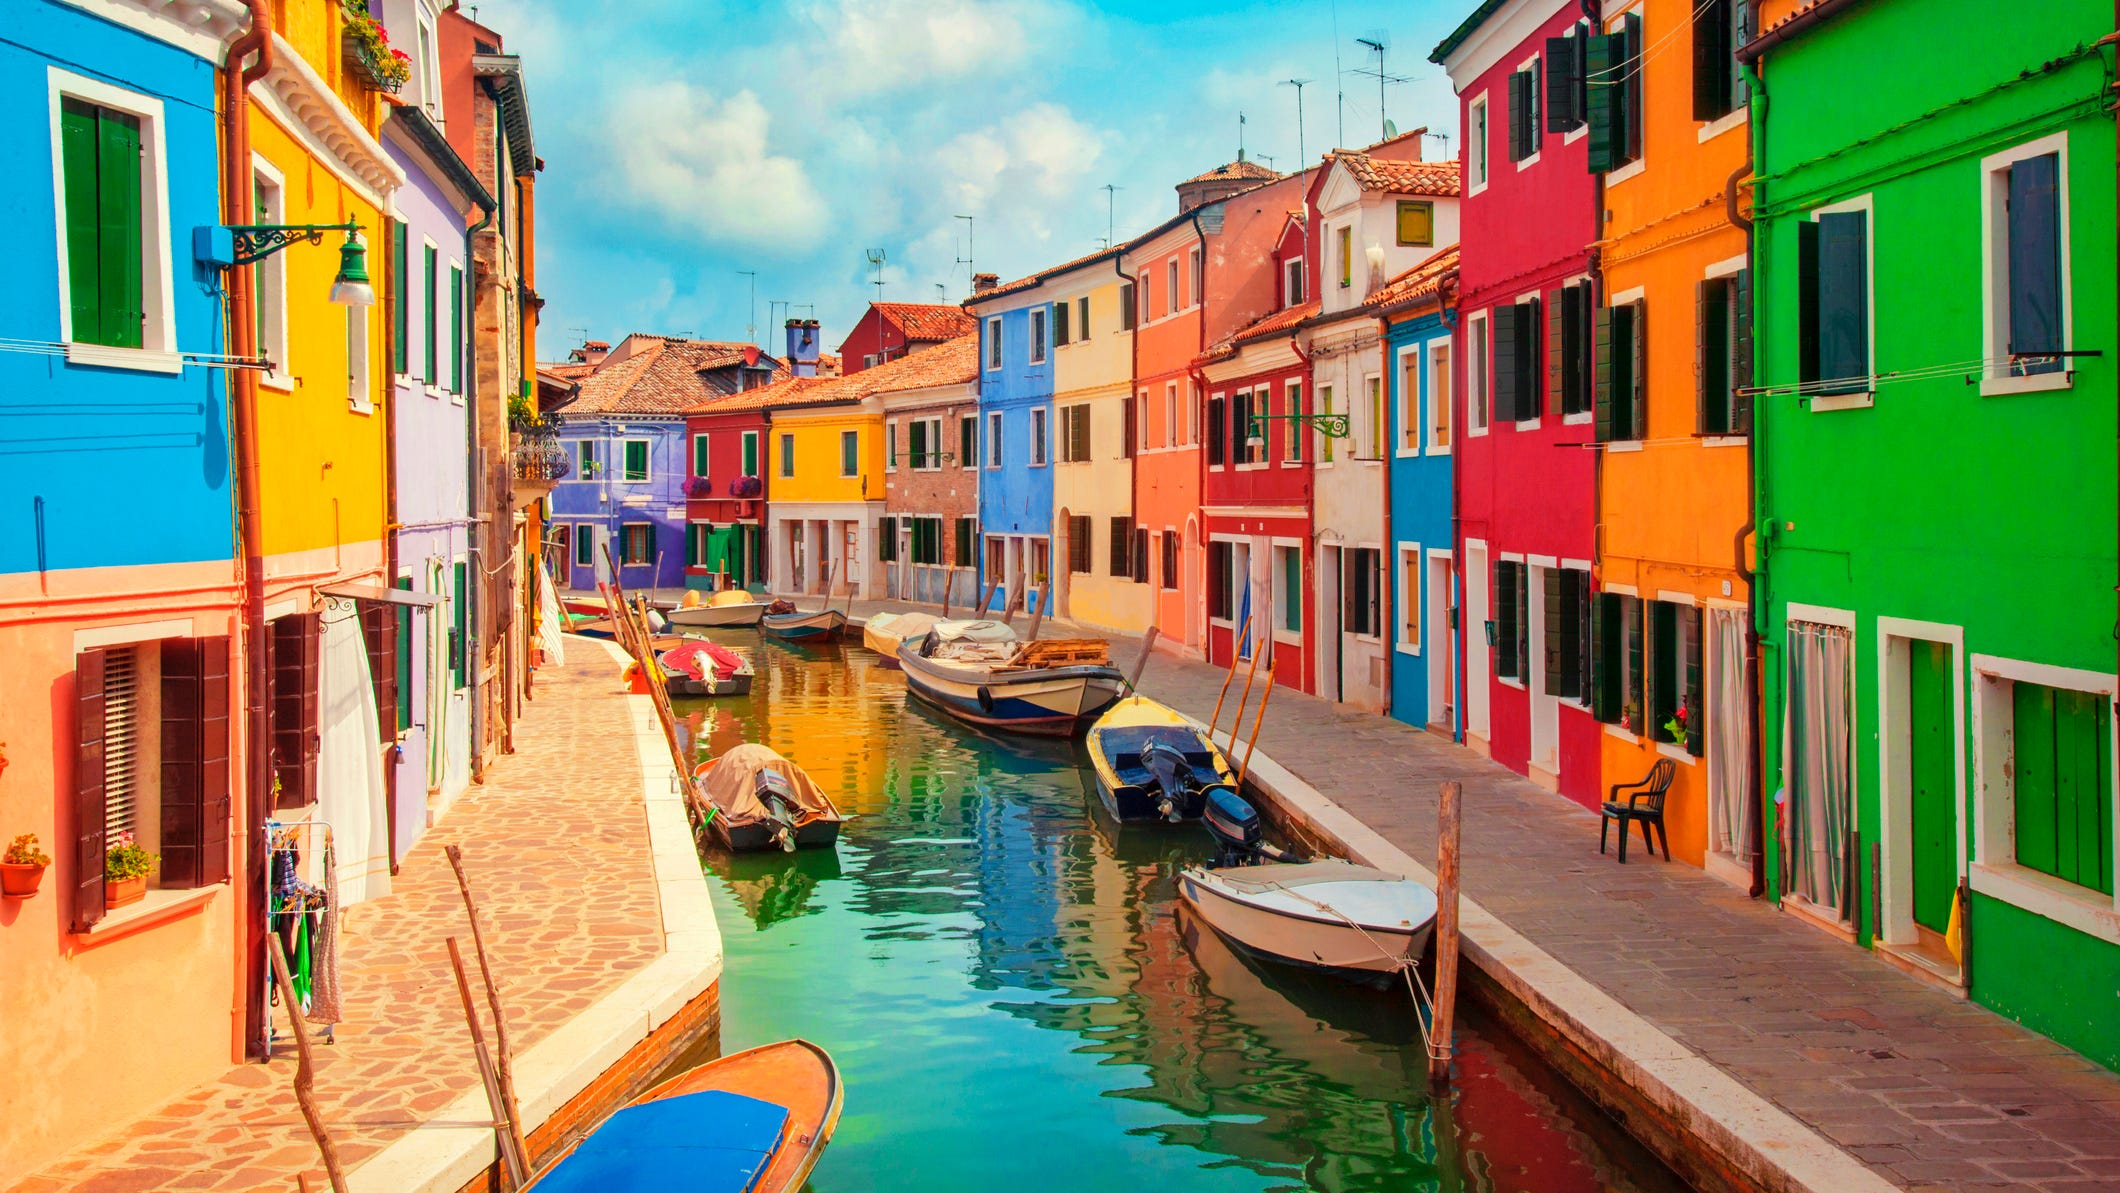 Burano, Italy: Just a 45-minute vaporetto ride from Venice, Burano is also built around a network of canals, but it's got a completely different vibe from its famous neighbor.